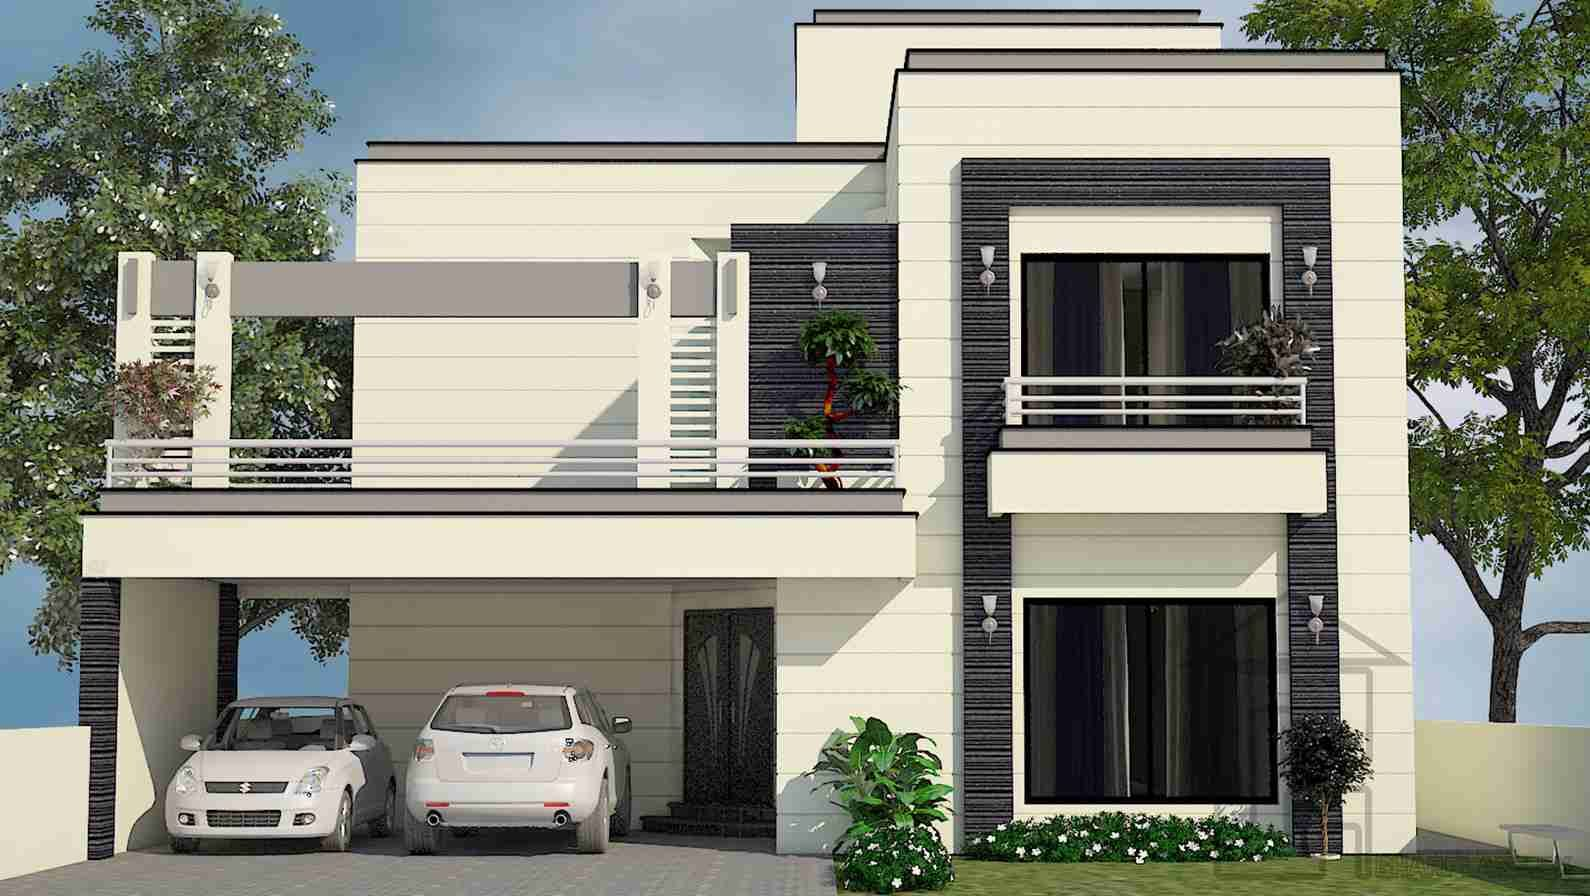 Model House Design 2016 250 Sq Yards New House Design Modern Plan Layout 2016